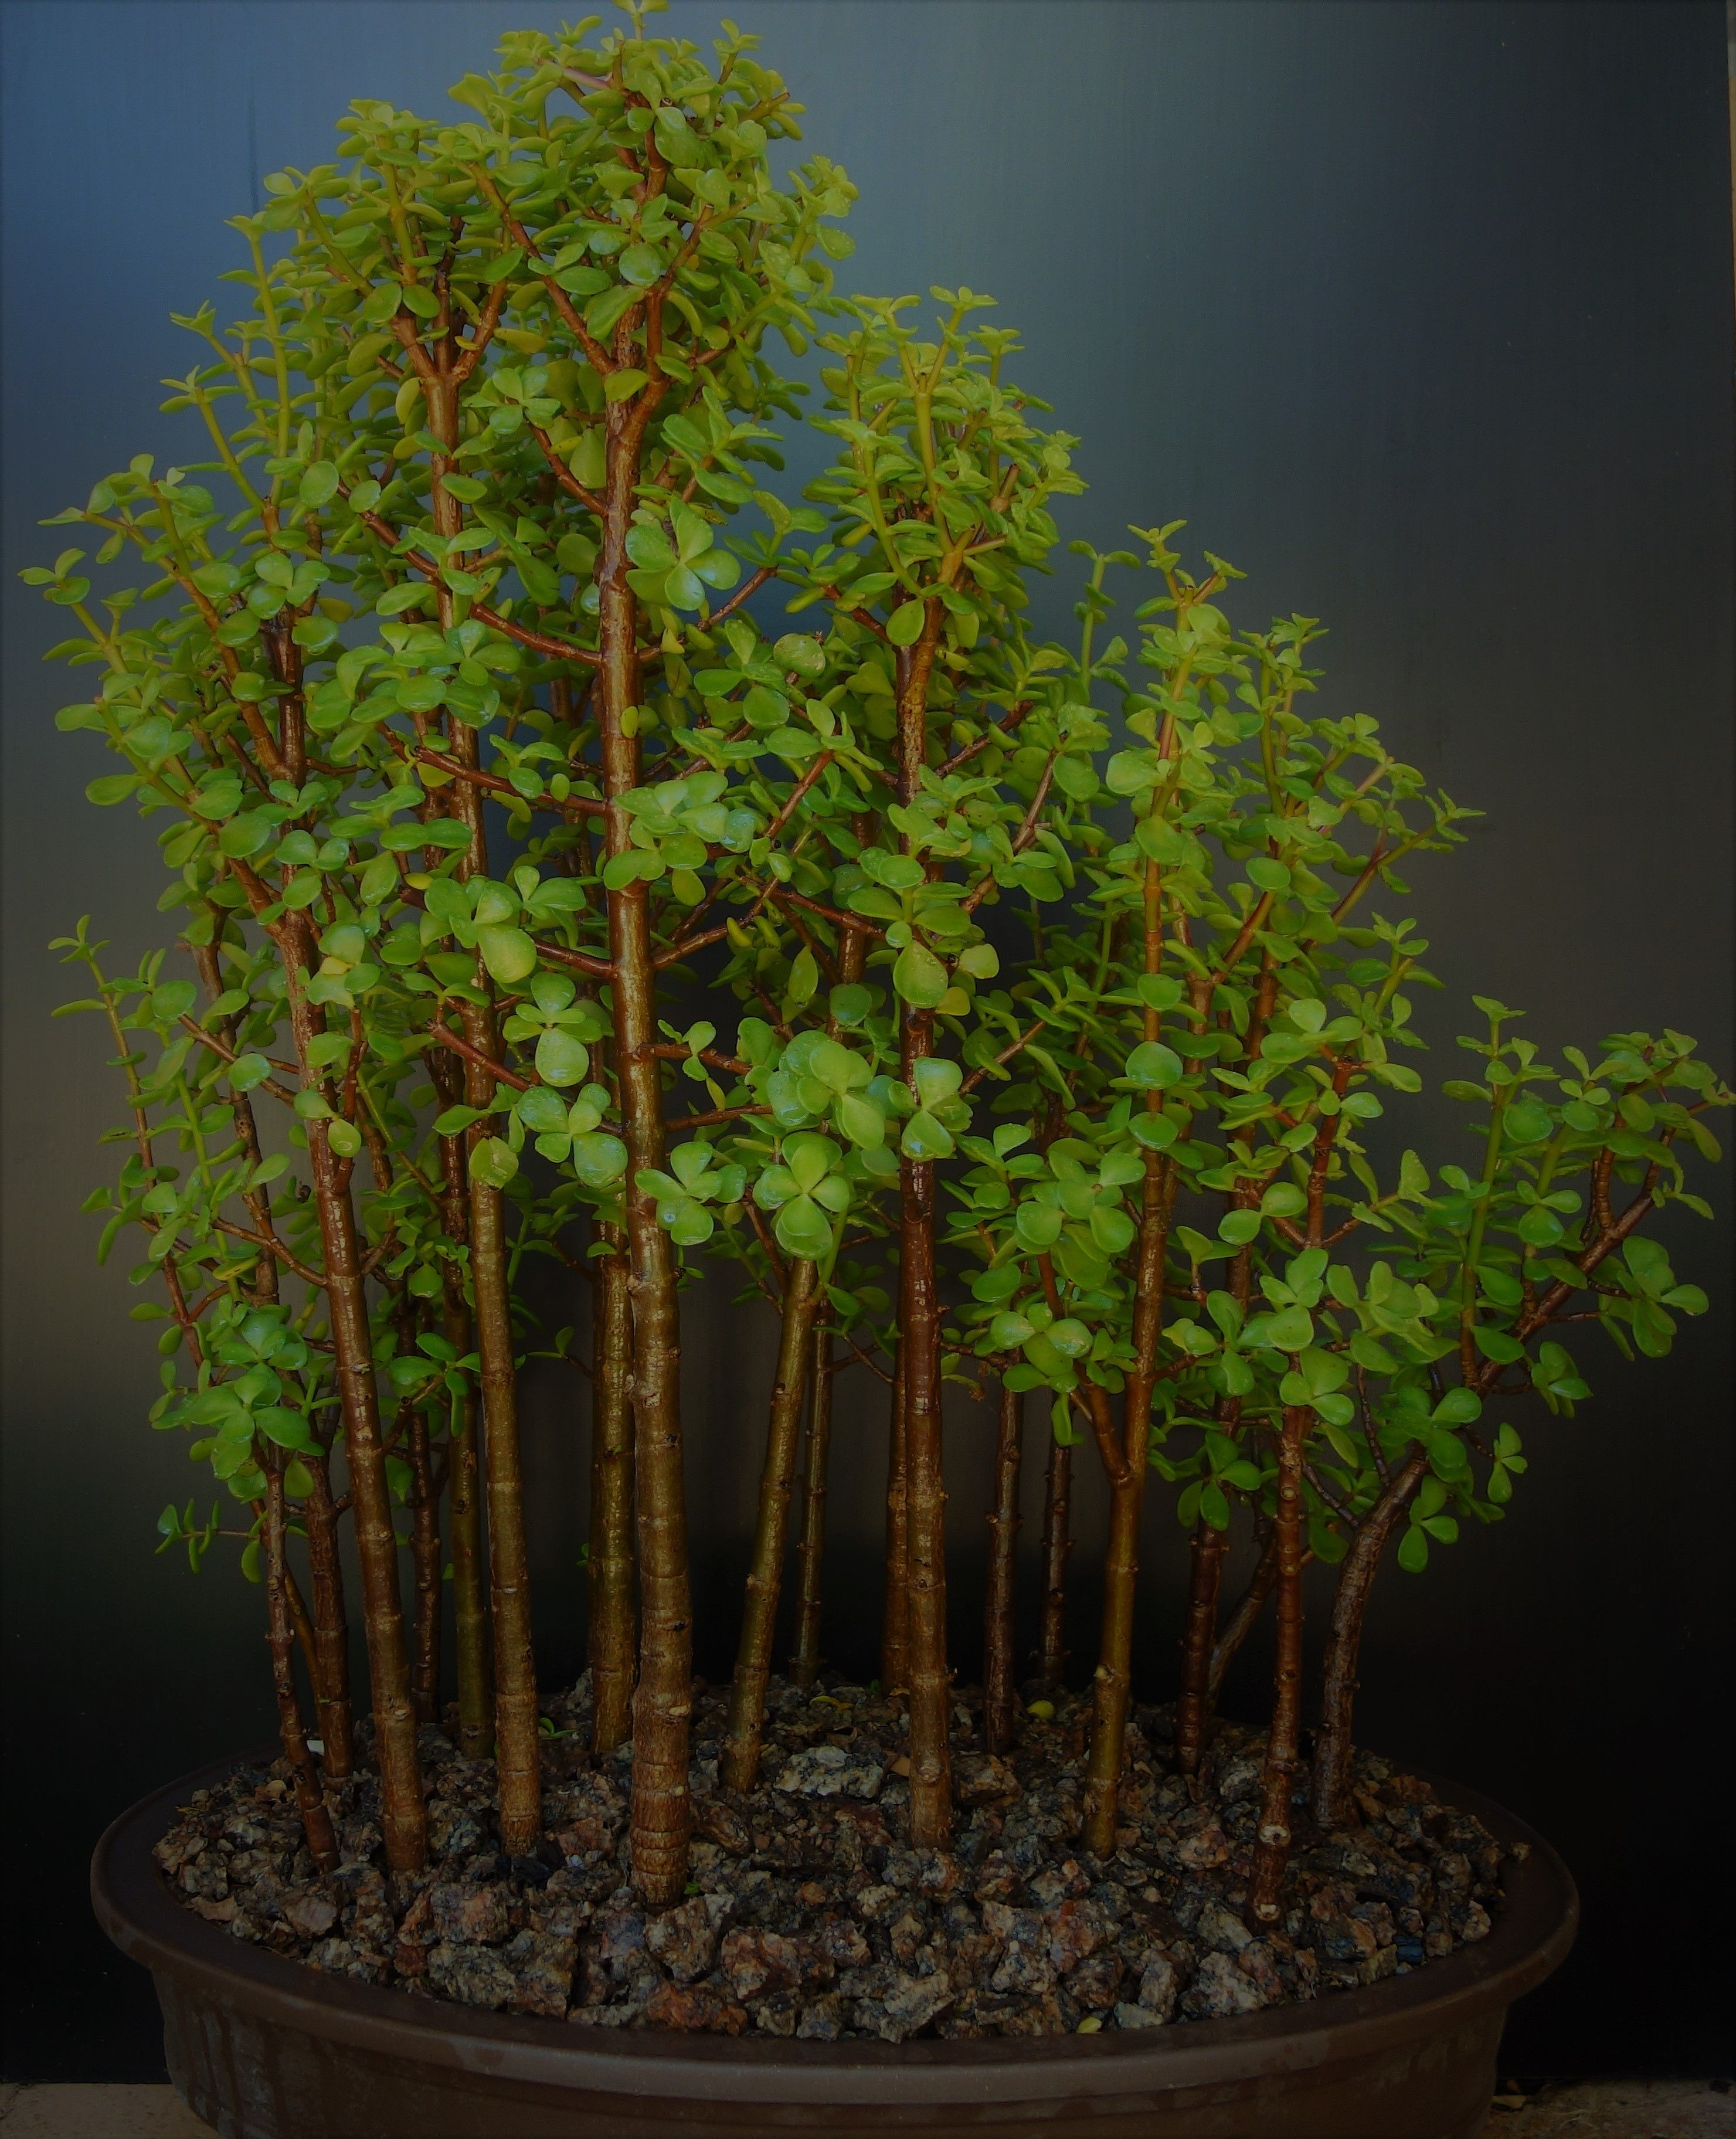 Portulacaria afra in the style of a regrowth forest | jade plant